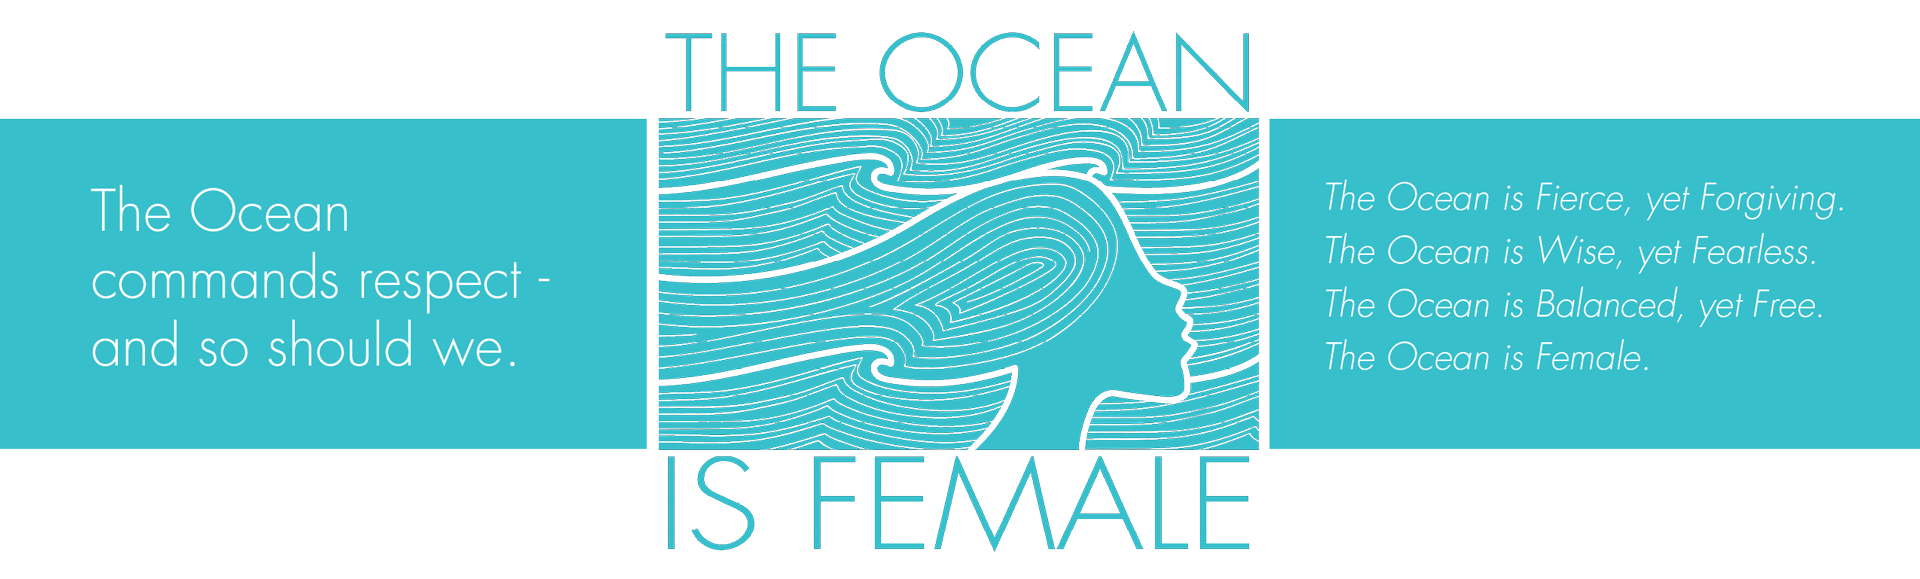 The Ocean Is Female